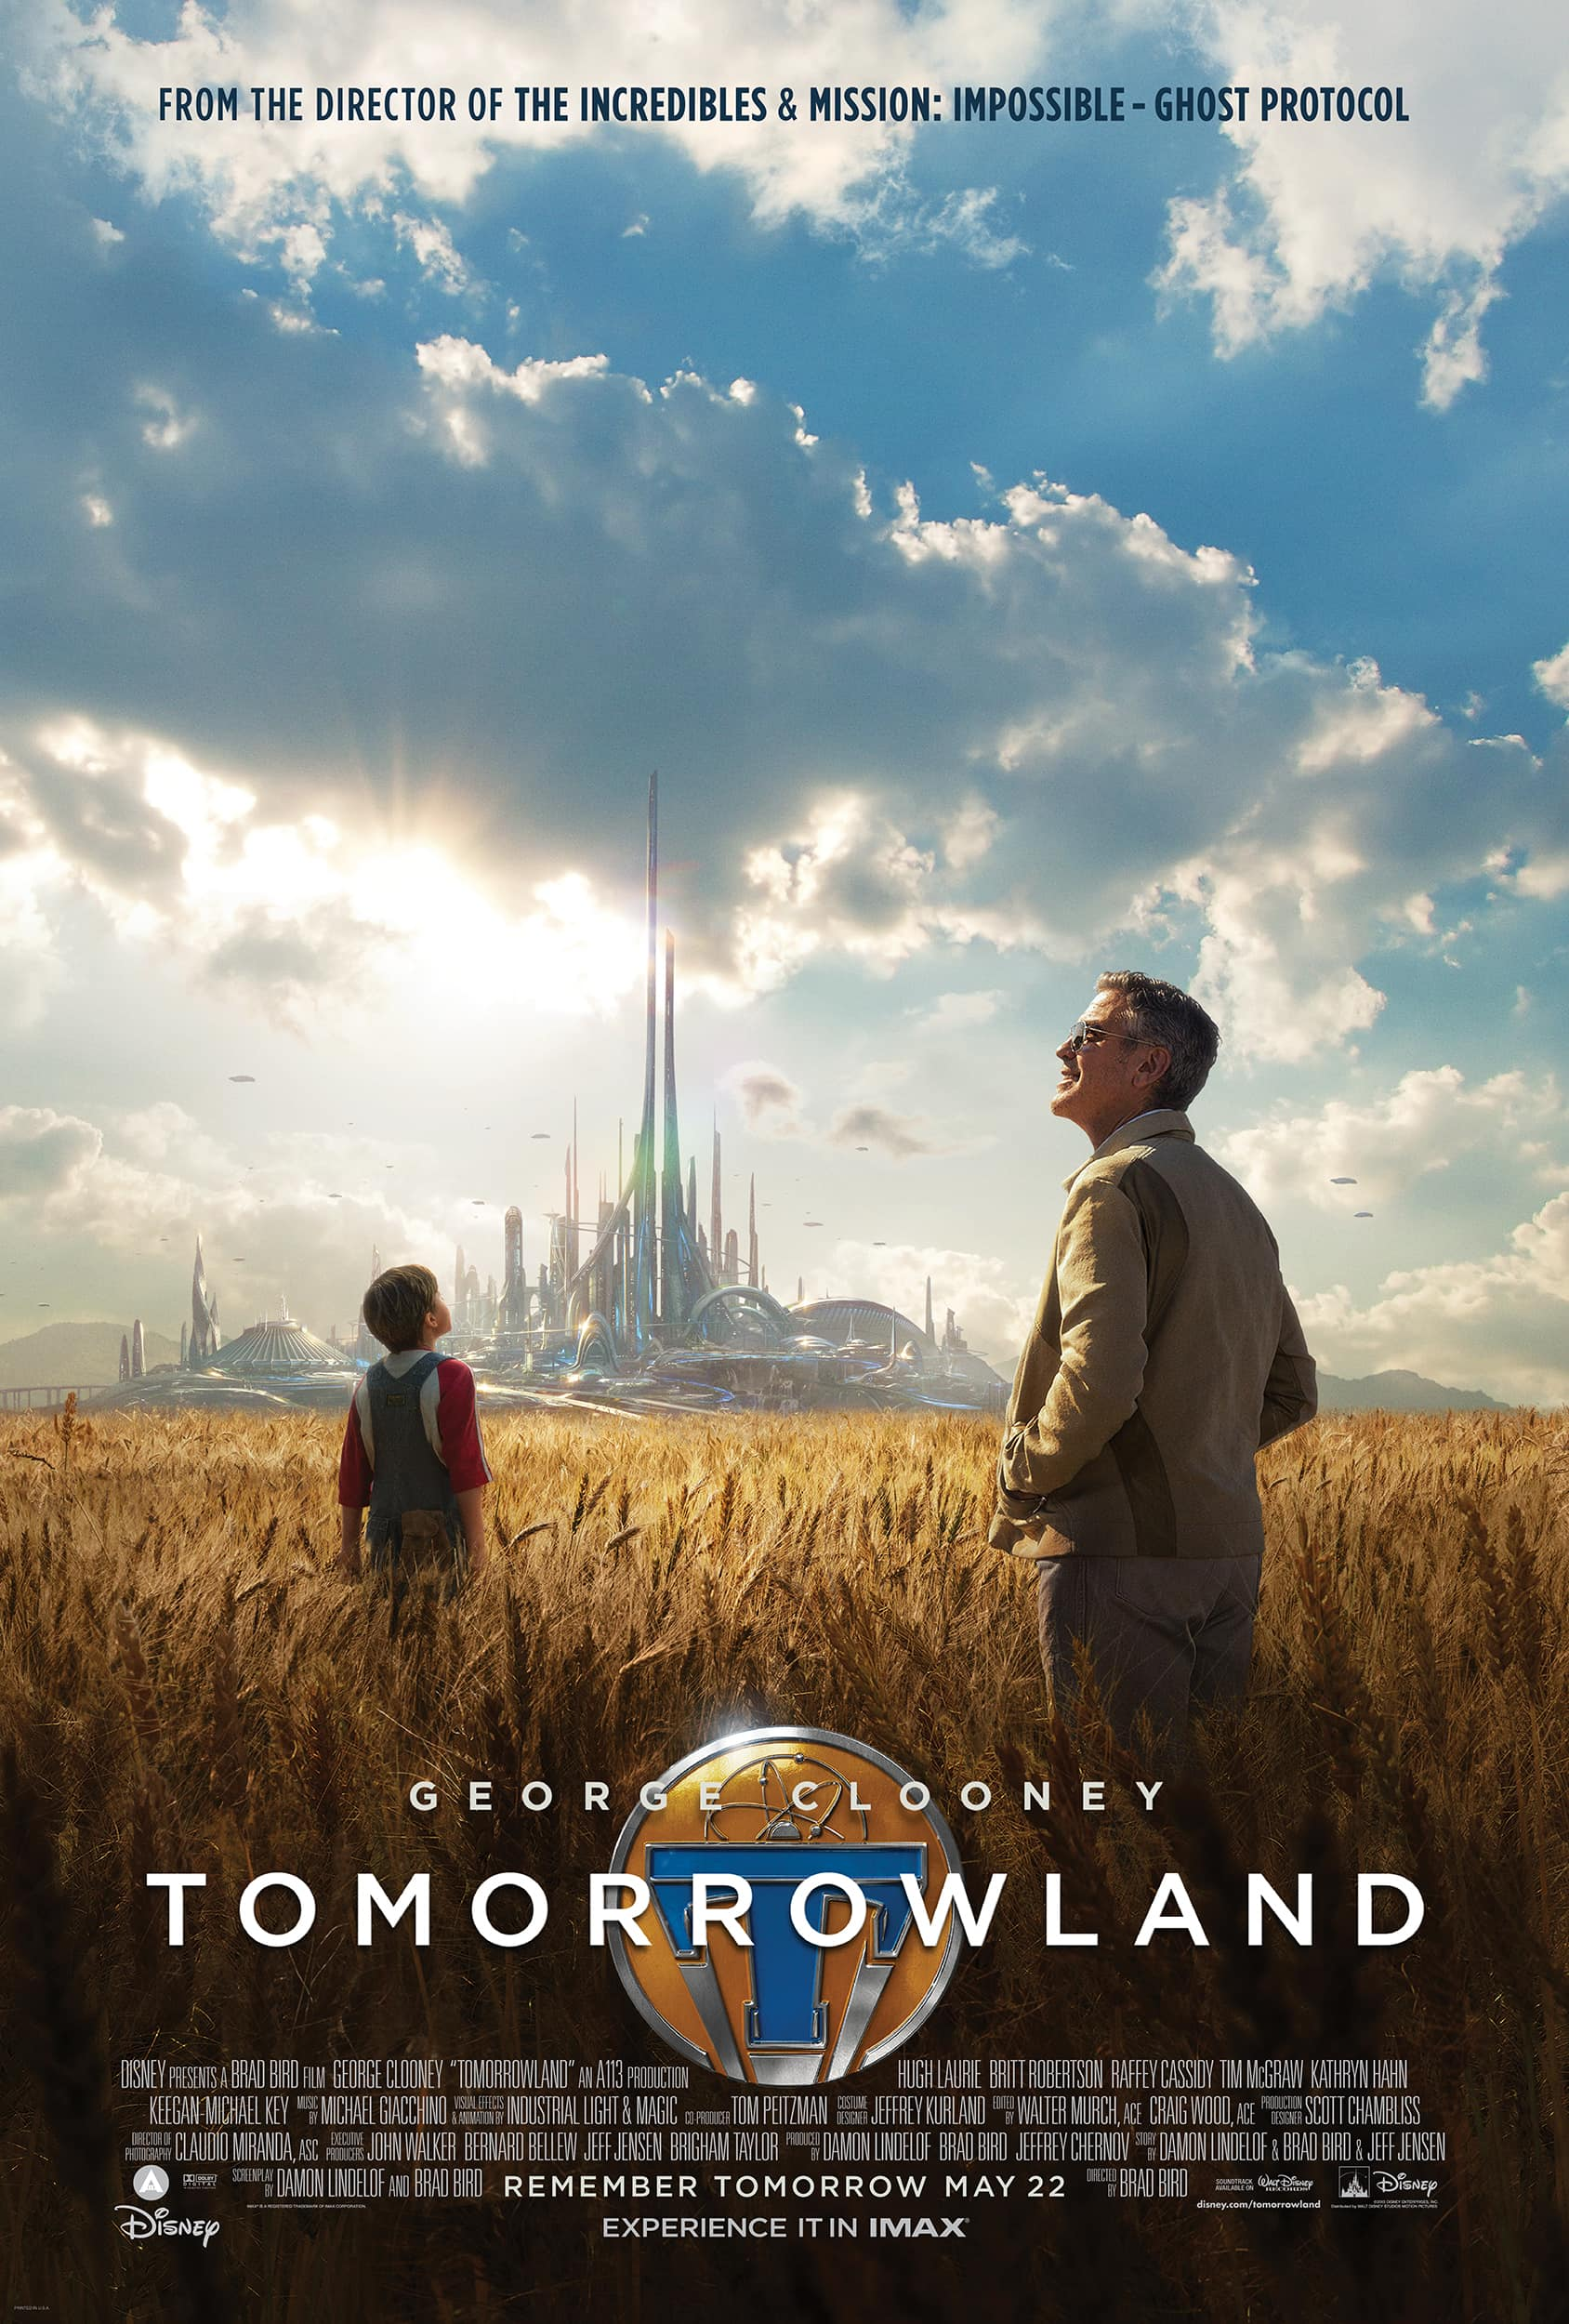 NEW TOMORROWLAND TRAILER (and it's awesome)